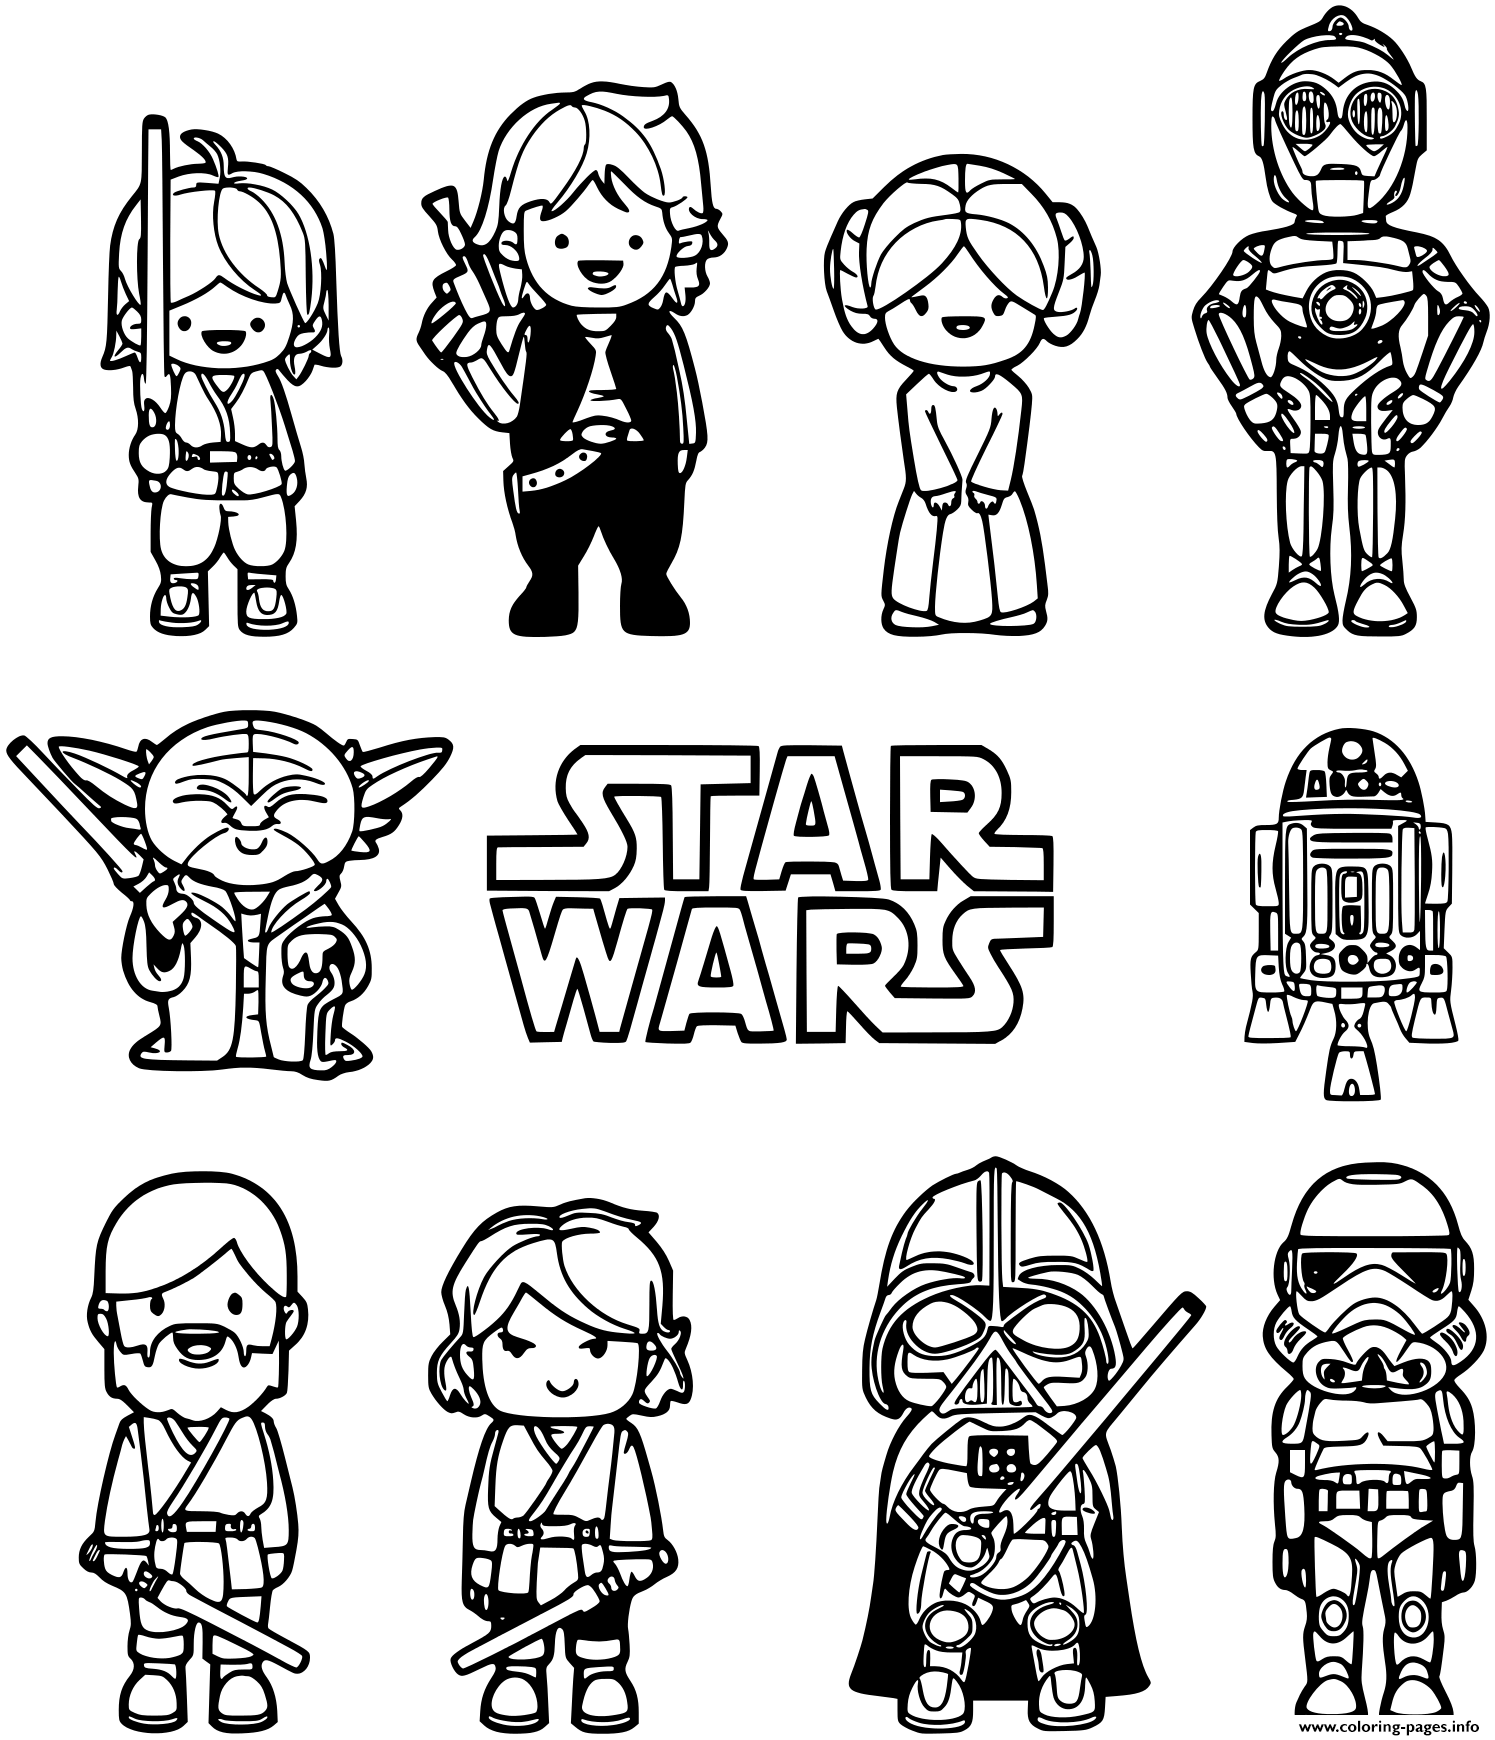 lego star wars printables lego star wars coloring pages to download and print for free lego printables star wars